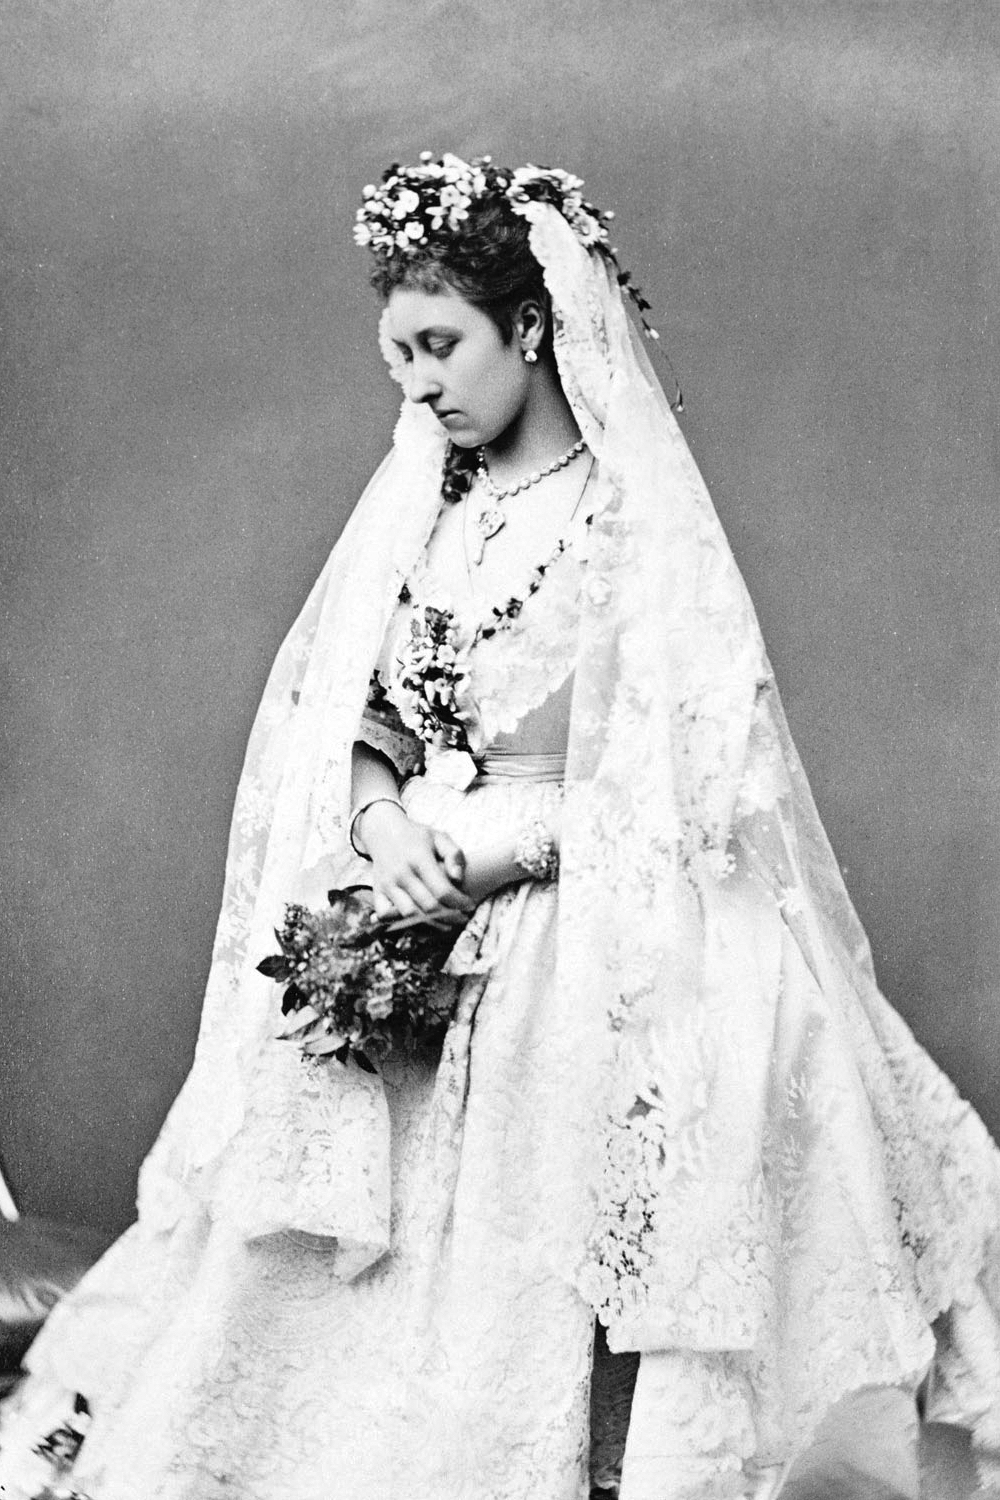 The Wedding of Princess Louise and John Campbell, 9th Duke of Argyll